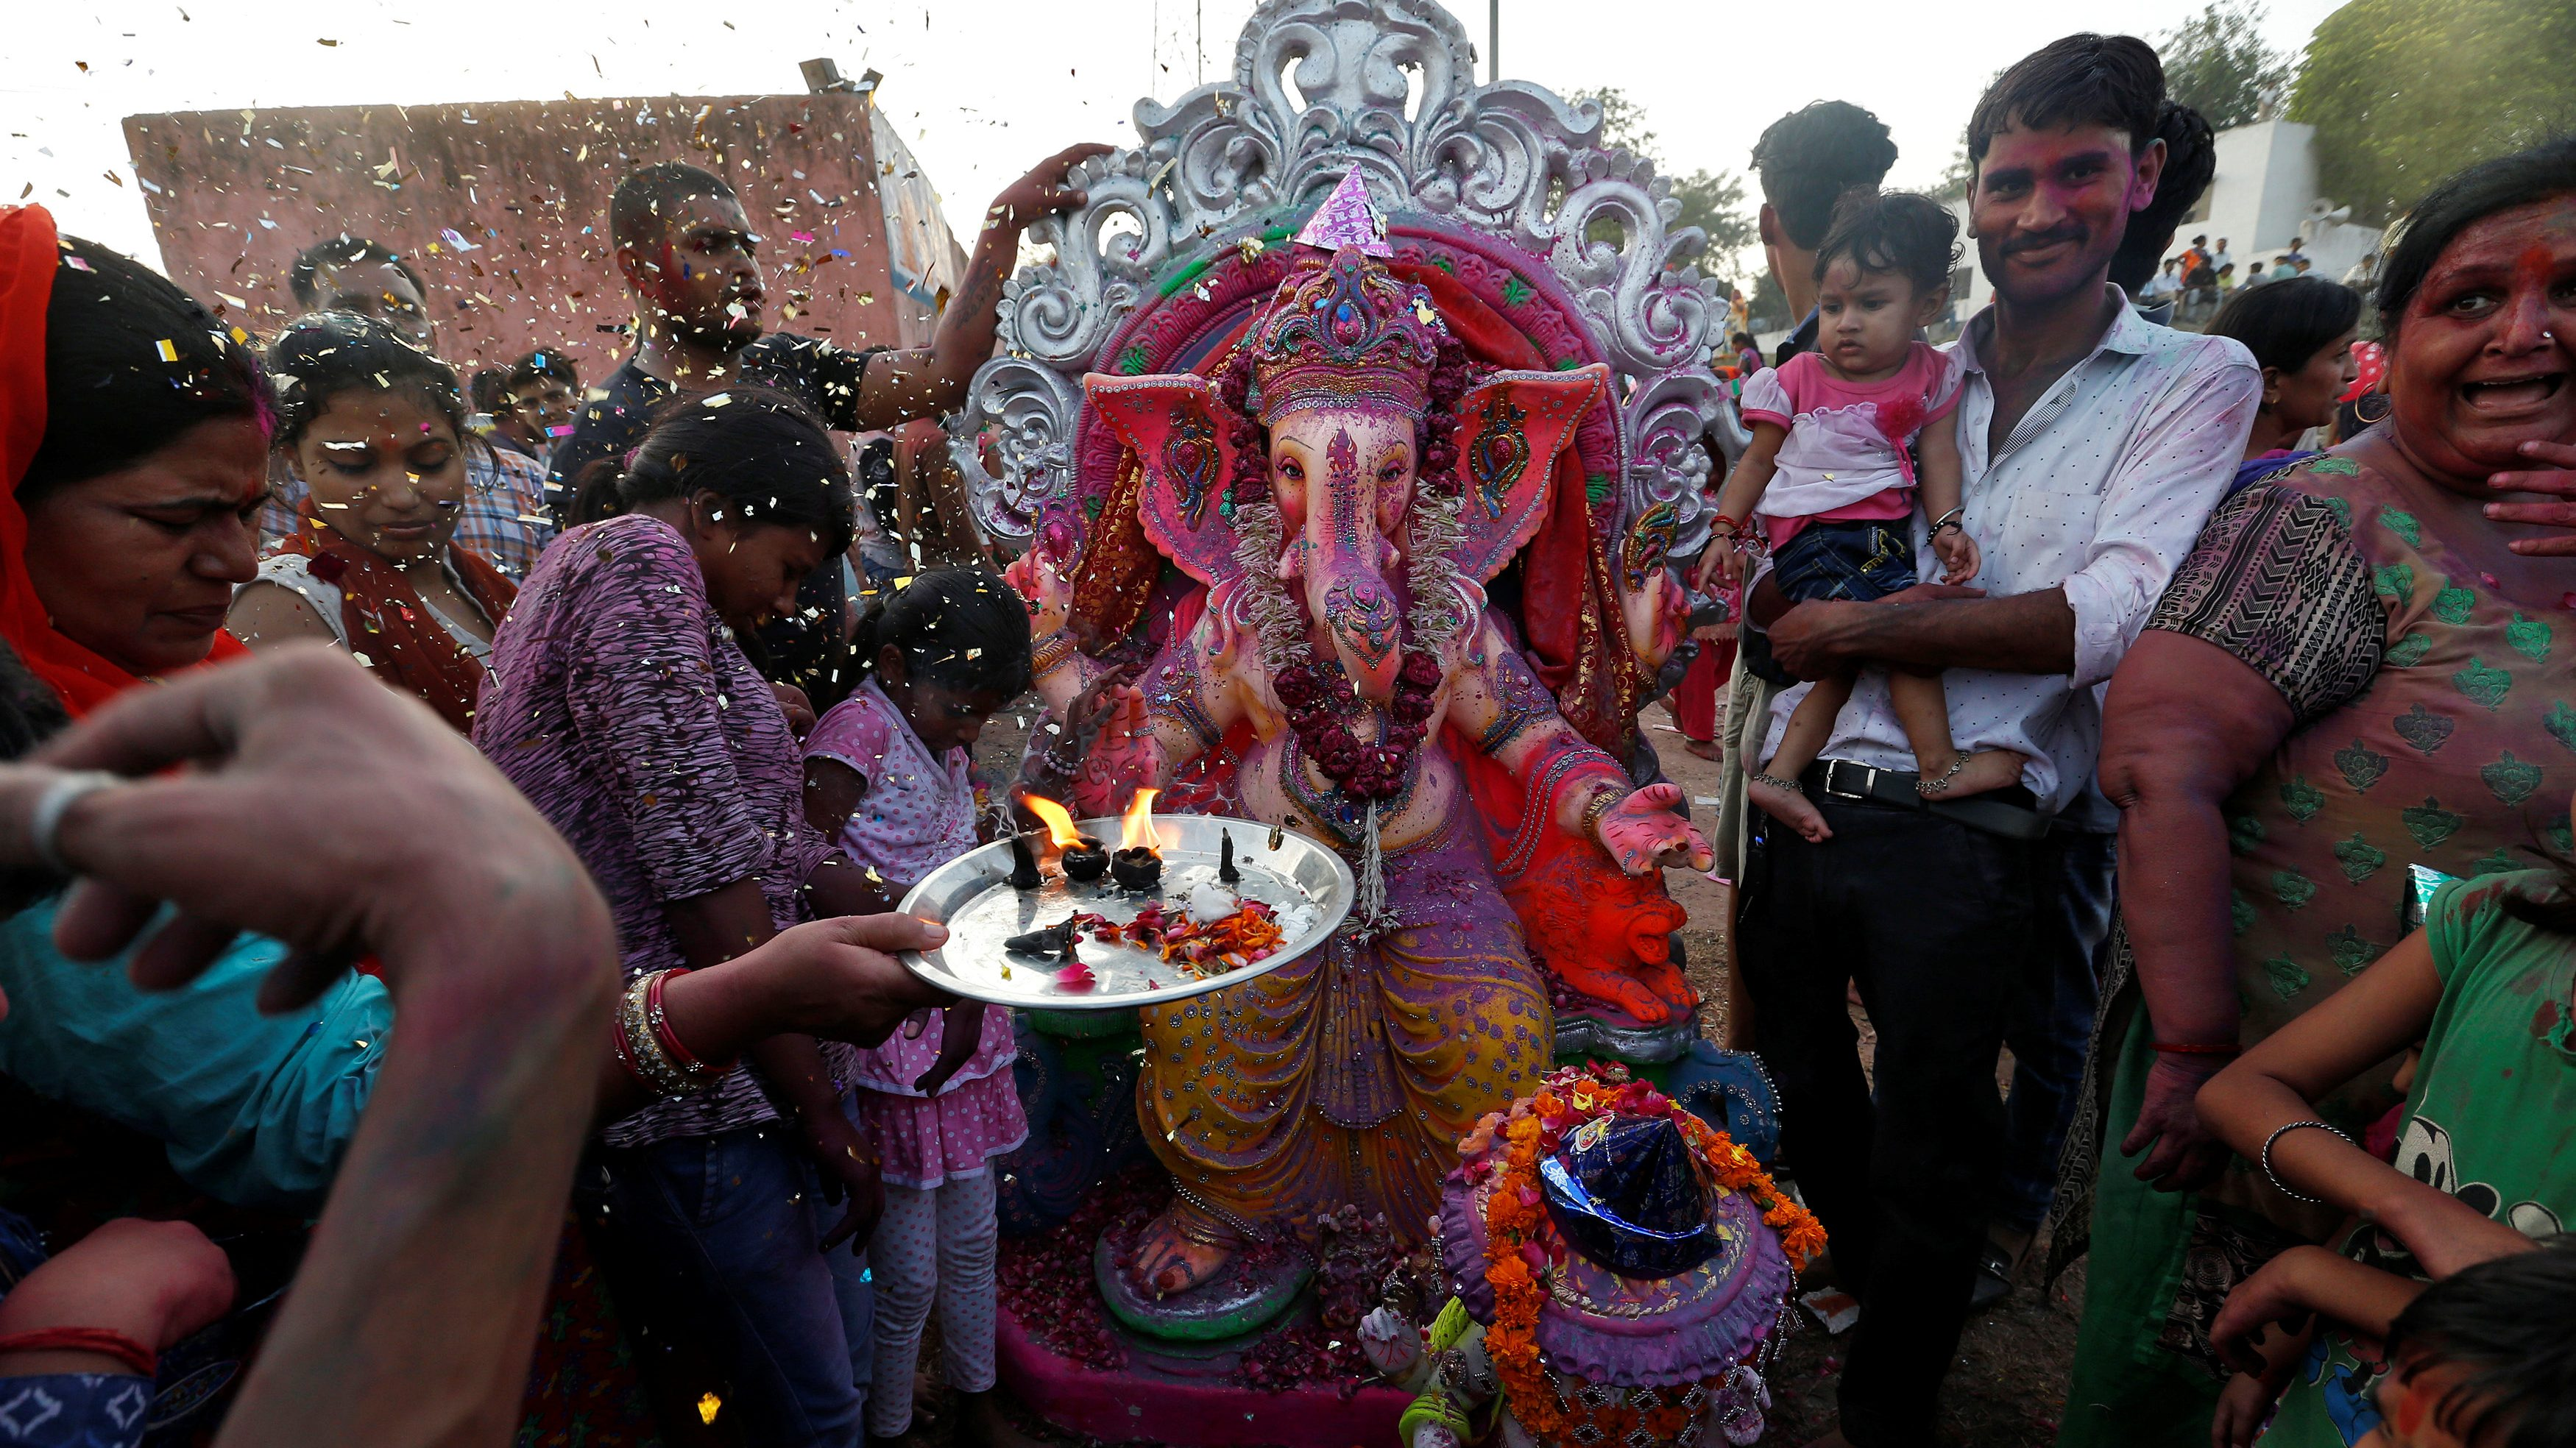 Devotees offer prayers to an idol of the Hindu god Ganesh, the deity of prosperity, as they make their way to the Yamuna river to immerse the idol on the last day of the ten-day-long Ganesh Chaturthi festival in Delhi